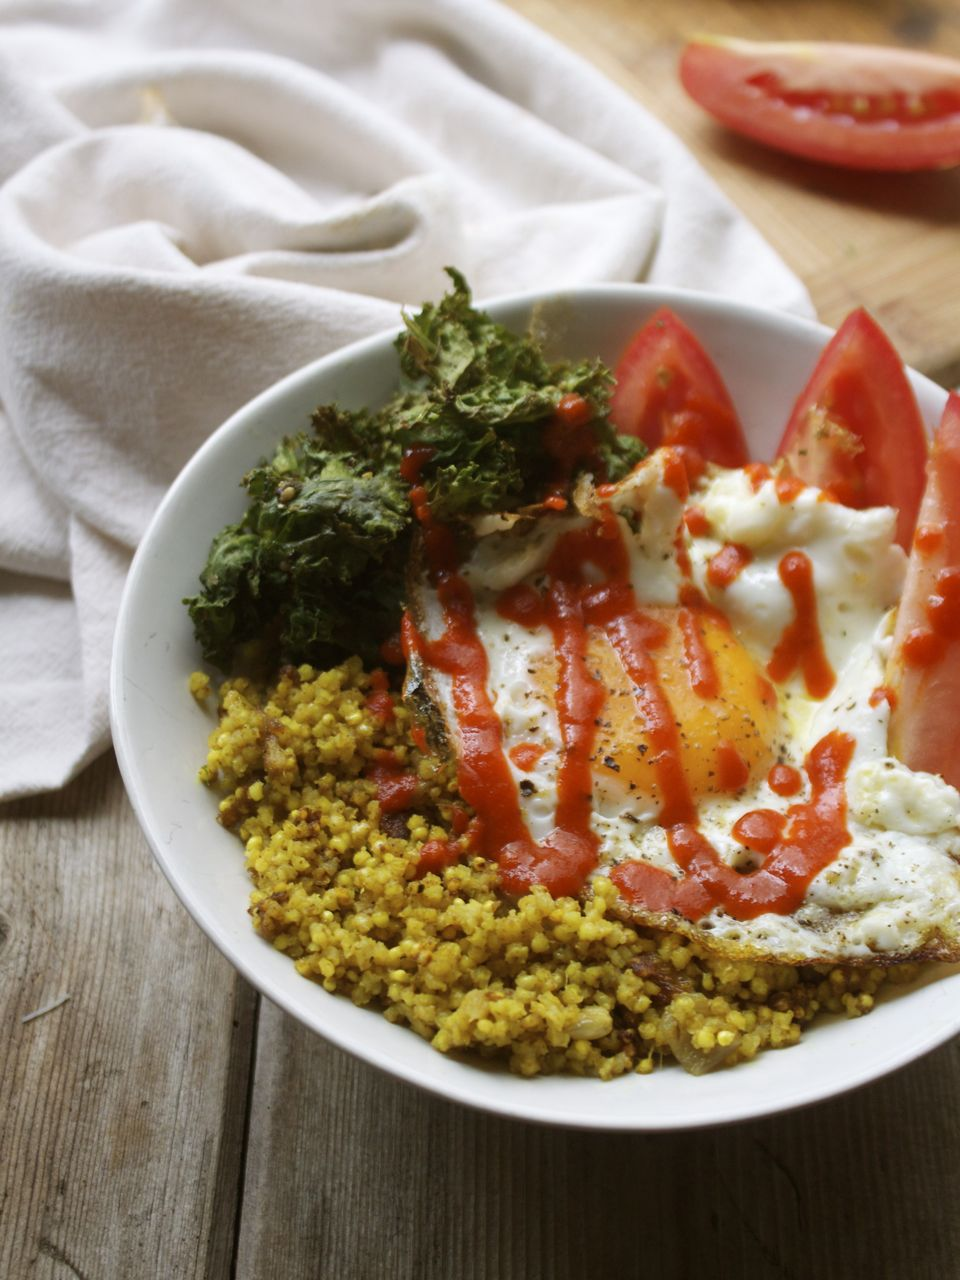 Coconut Curried Millet Pilaf with Crispy Kale, Tomato & Egg